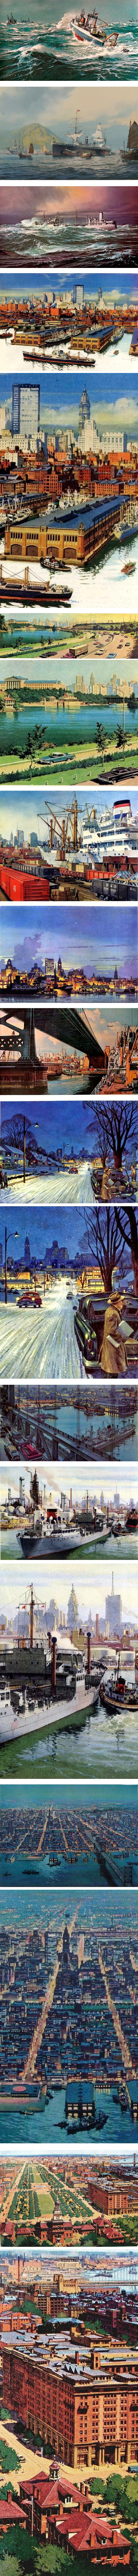 Carl G Evers, marine painting and illustrations of Philadelphia in the 1050s for Philadelphia Electric Company